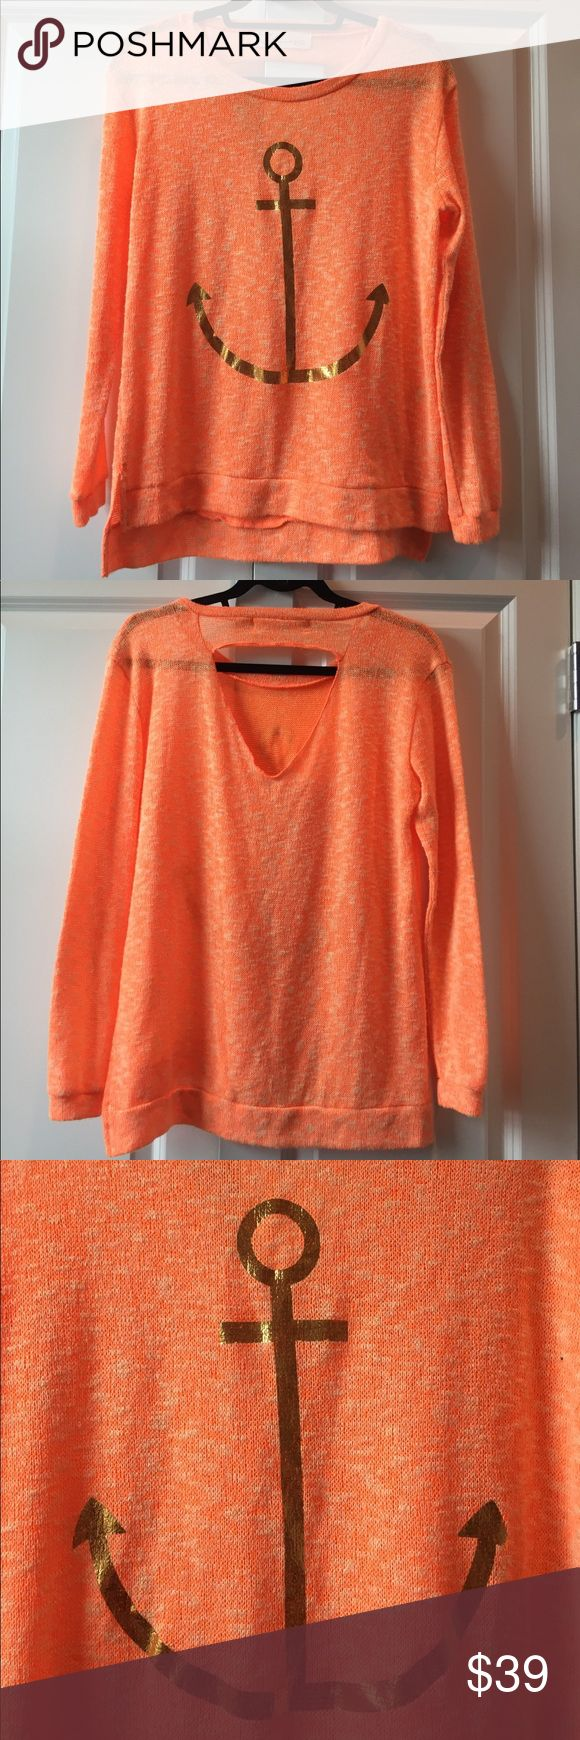 Vintage Havana Orange and Gold Anchor Sweater Vintage Havana Orange and Gold Anchor Sweater with cut-out in the back size Medium. This lightweight sweater is perfect for a cool summer night and has a large gold anchor on the front. Like new condition only worn a few times Vintage Havana Sweaters Crew & Scoop Necks